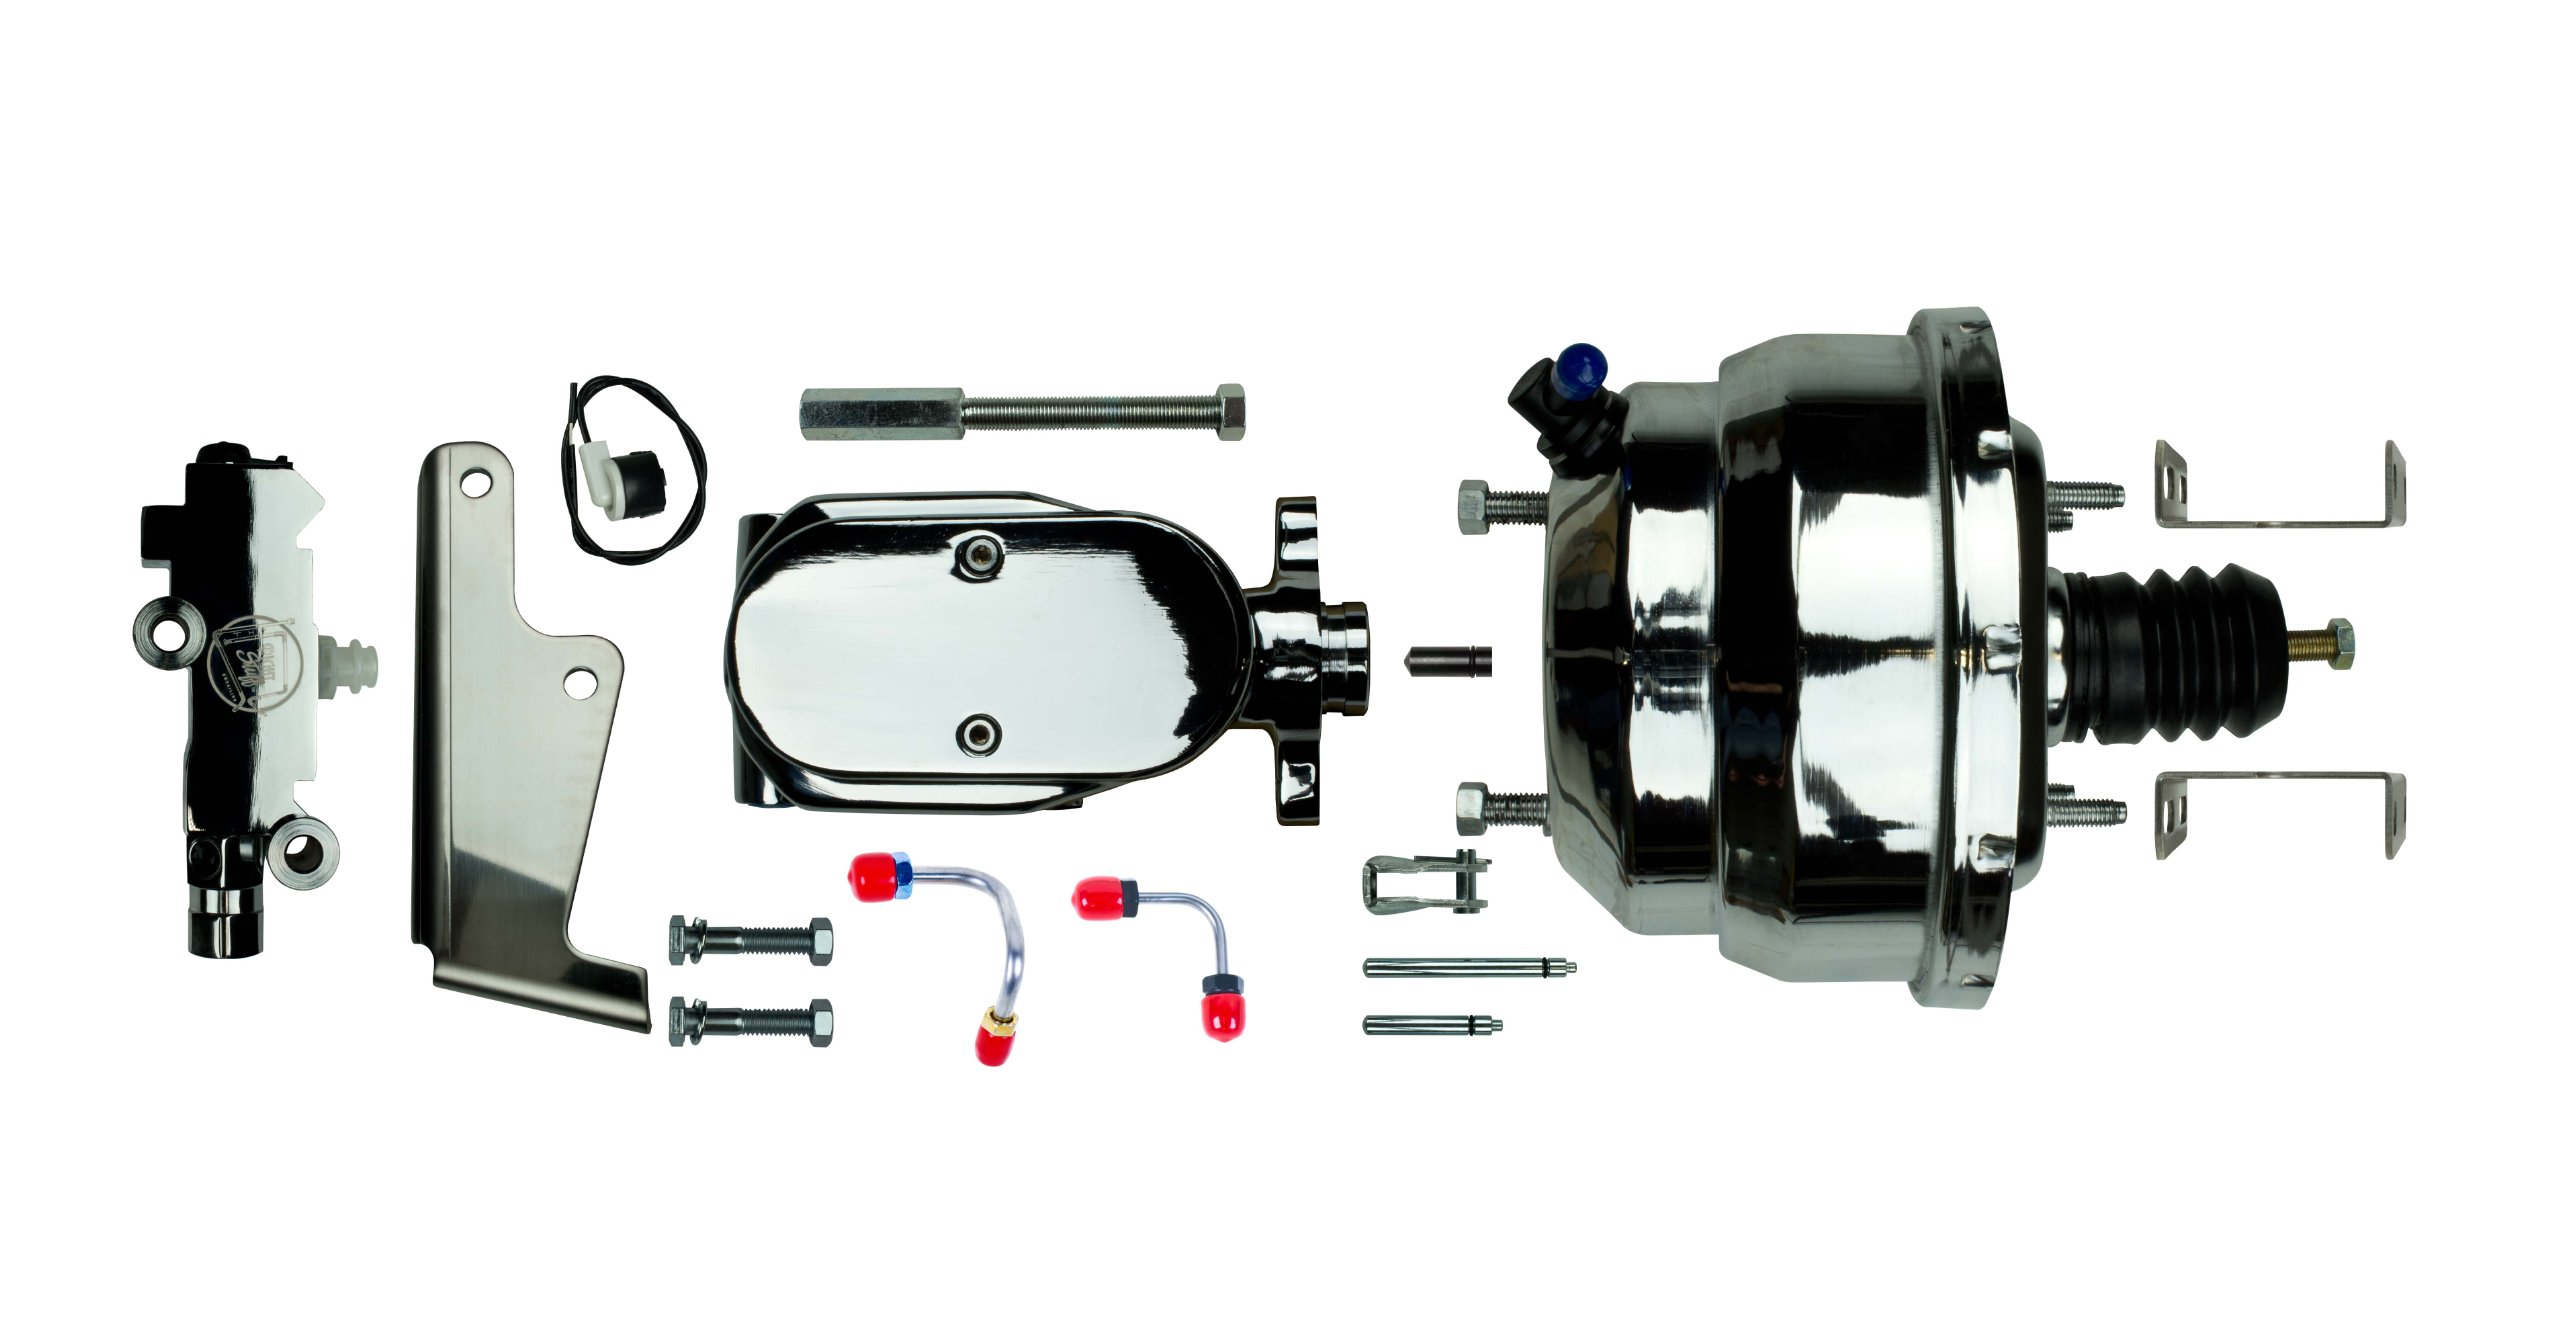 The Right Stuff Detailing J84315672 Chrome Upper Assembly, Booster, Master, Valve and lines Disc/Disc Universal.  With booster mounting brackets